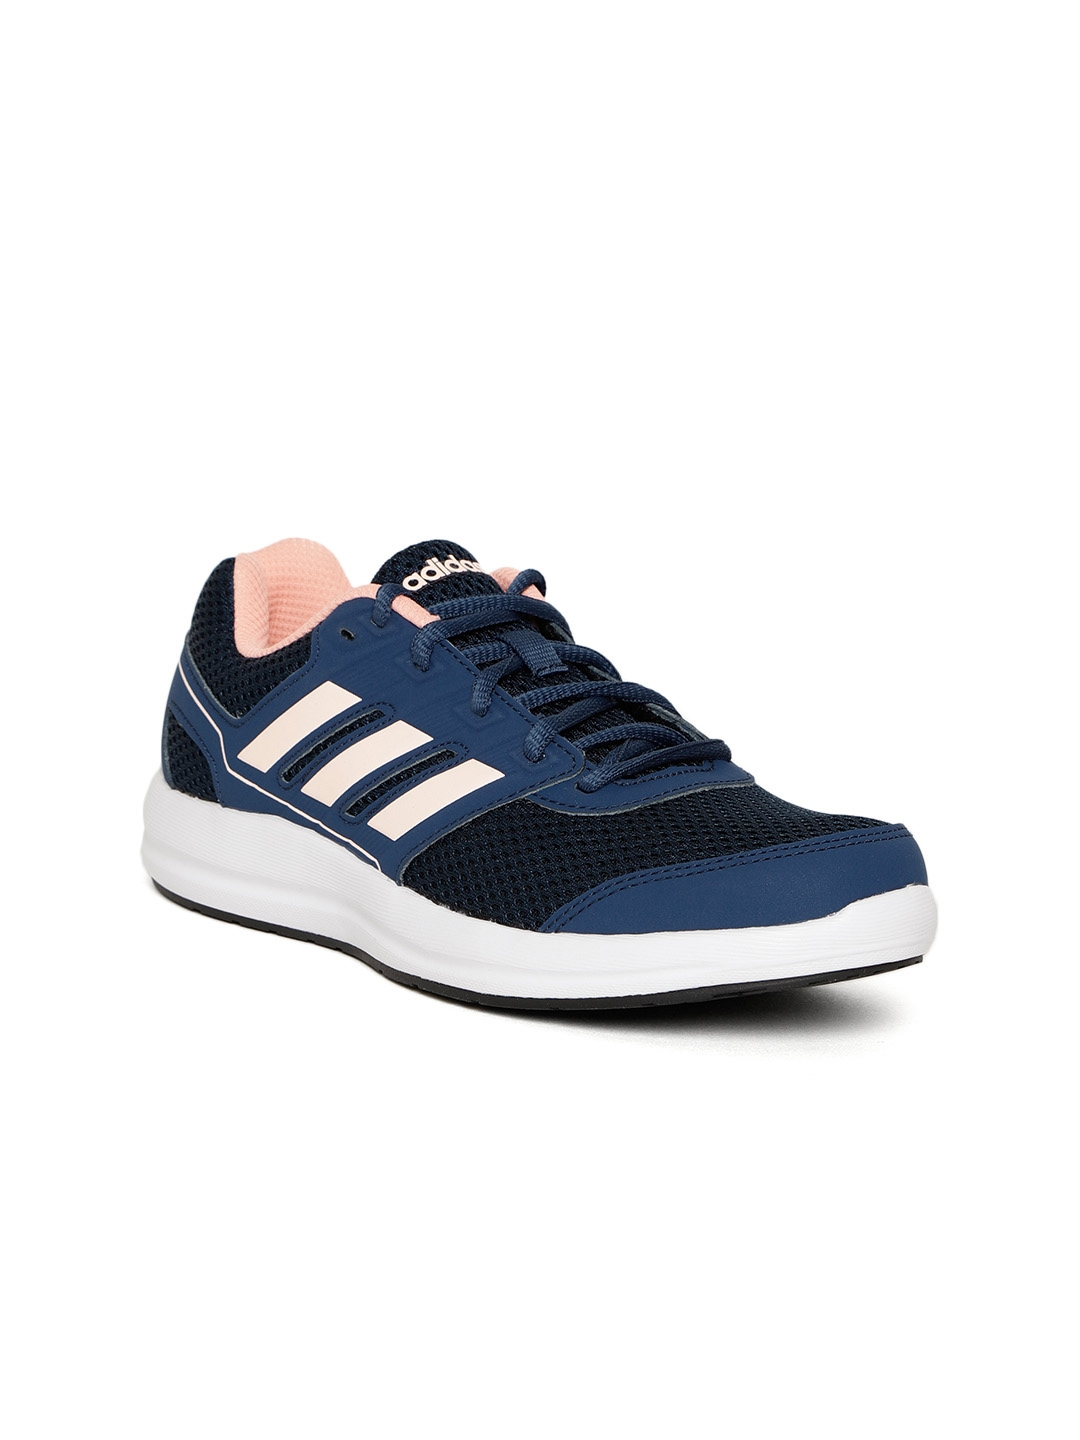 9a47e47892d4a9 Buy ADIDAS Women Navy Blue Hellion Z Running Shoes - Sports Shoes ...